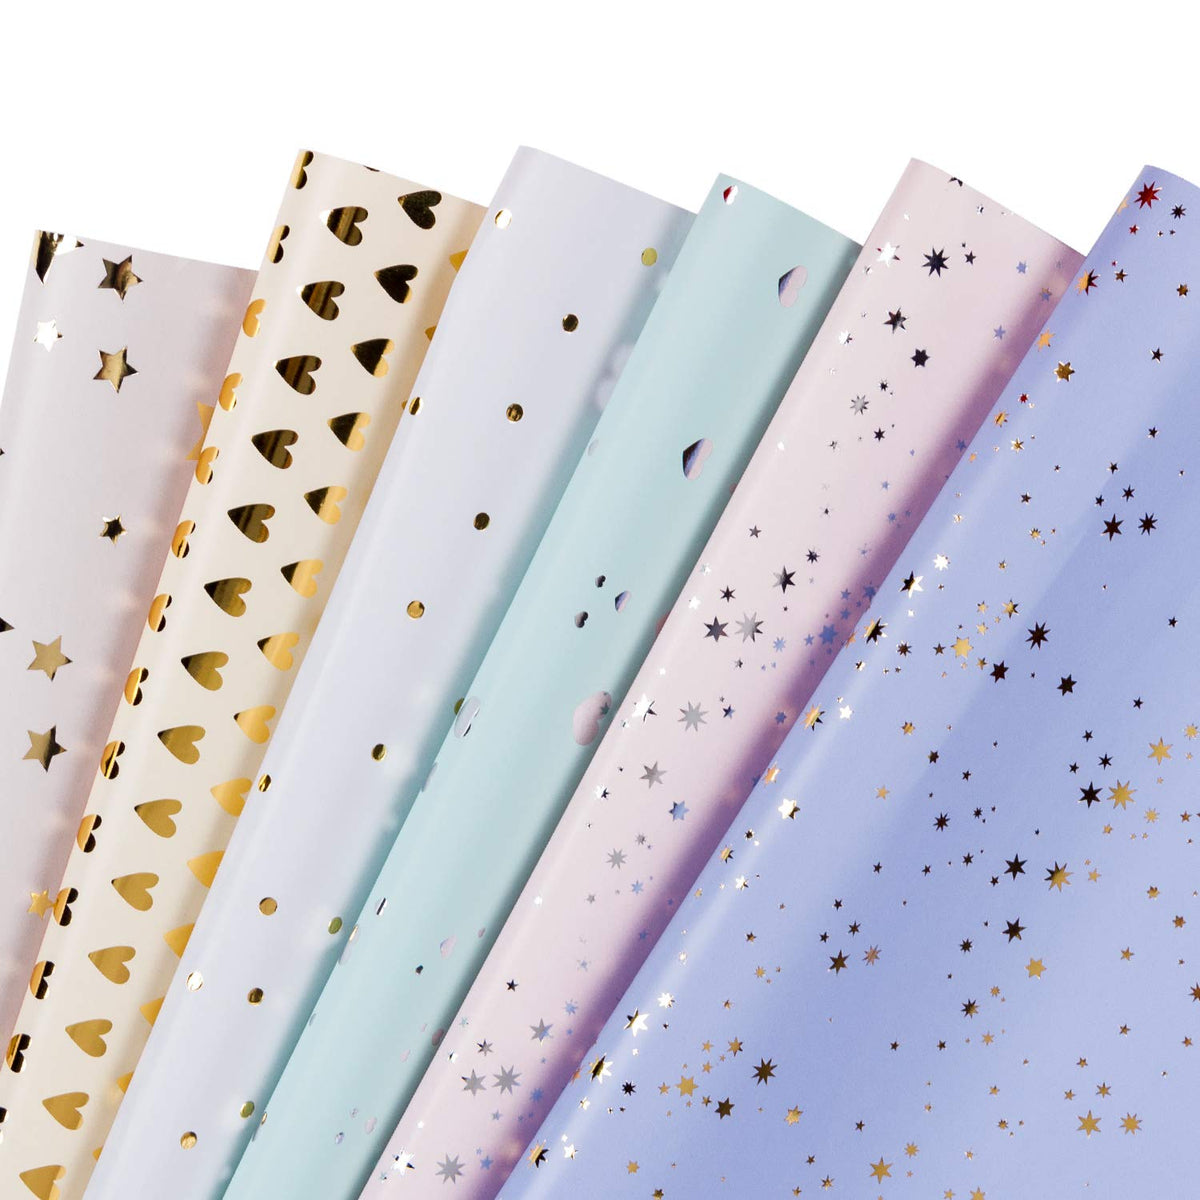 wrapaholic-gift-wrapping-paper-sheets-pastel-colors-1